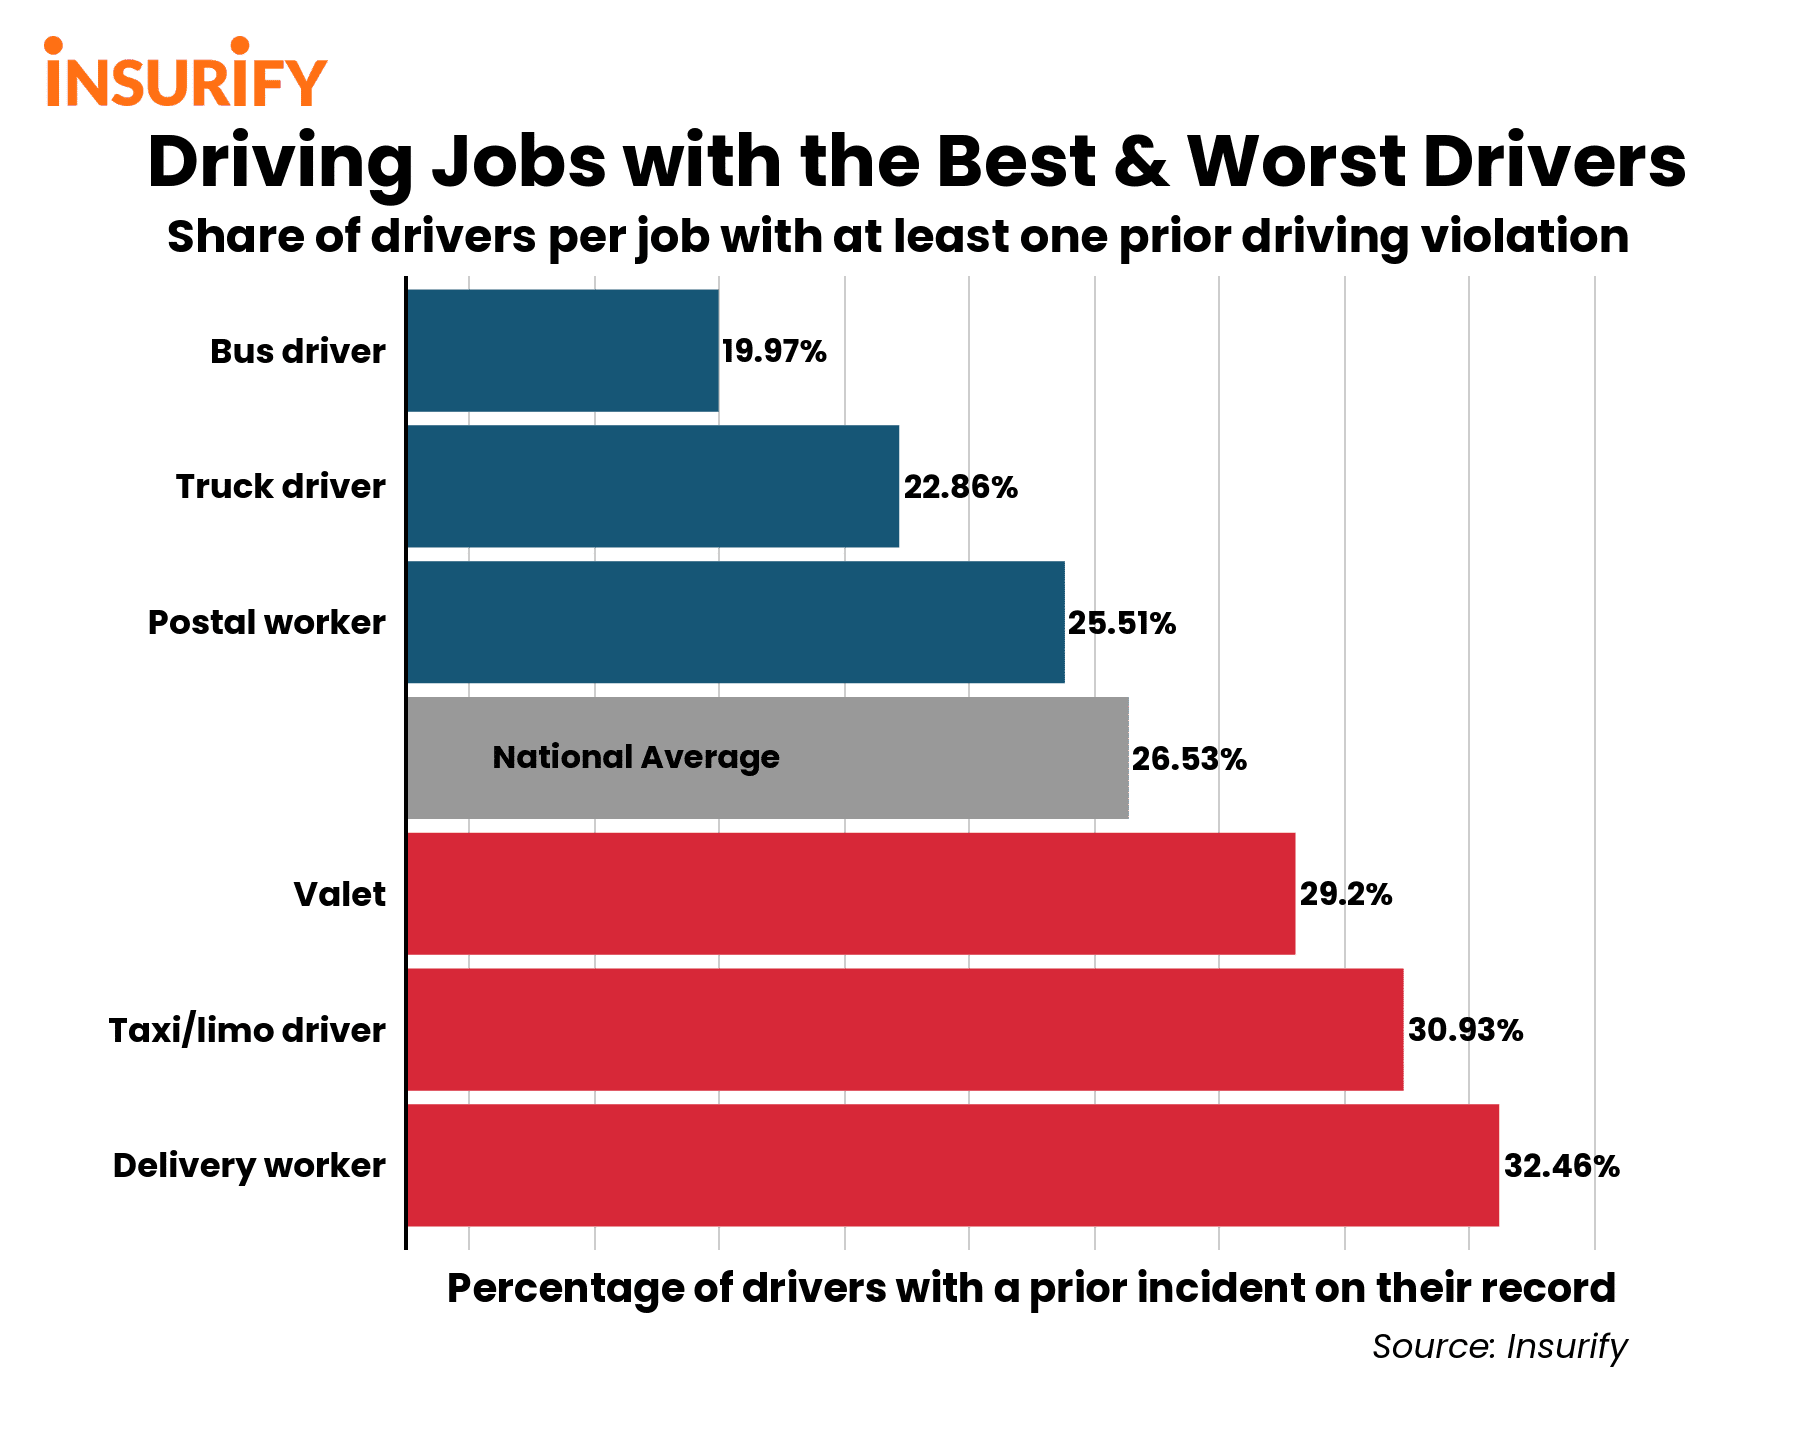 Bar graph showing the percentage of drivers per driving job with prior incident on their record.